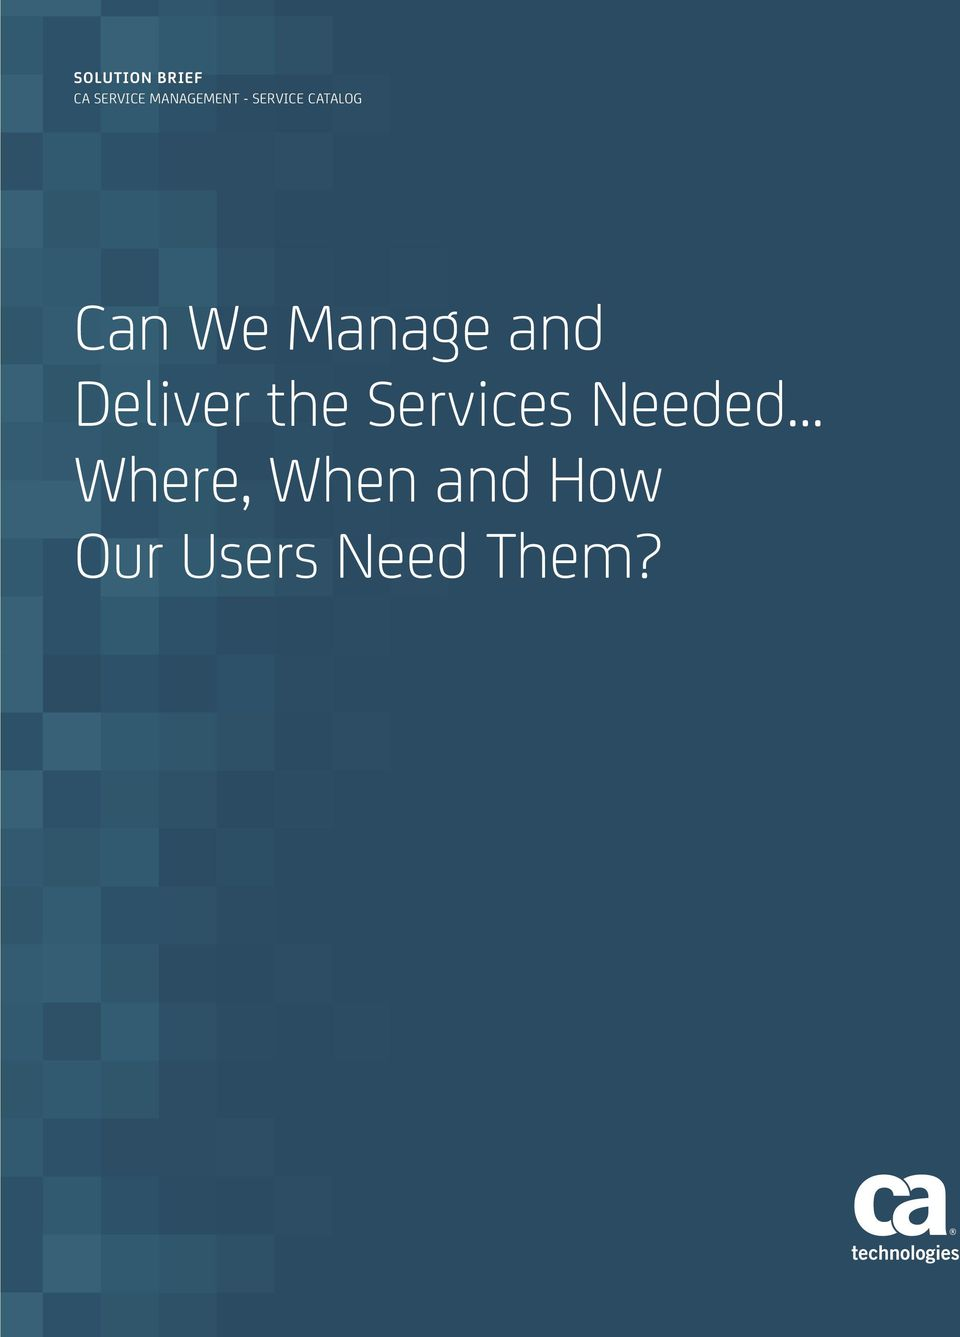 Manage and Deliver the Services